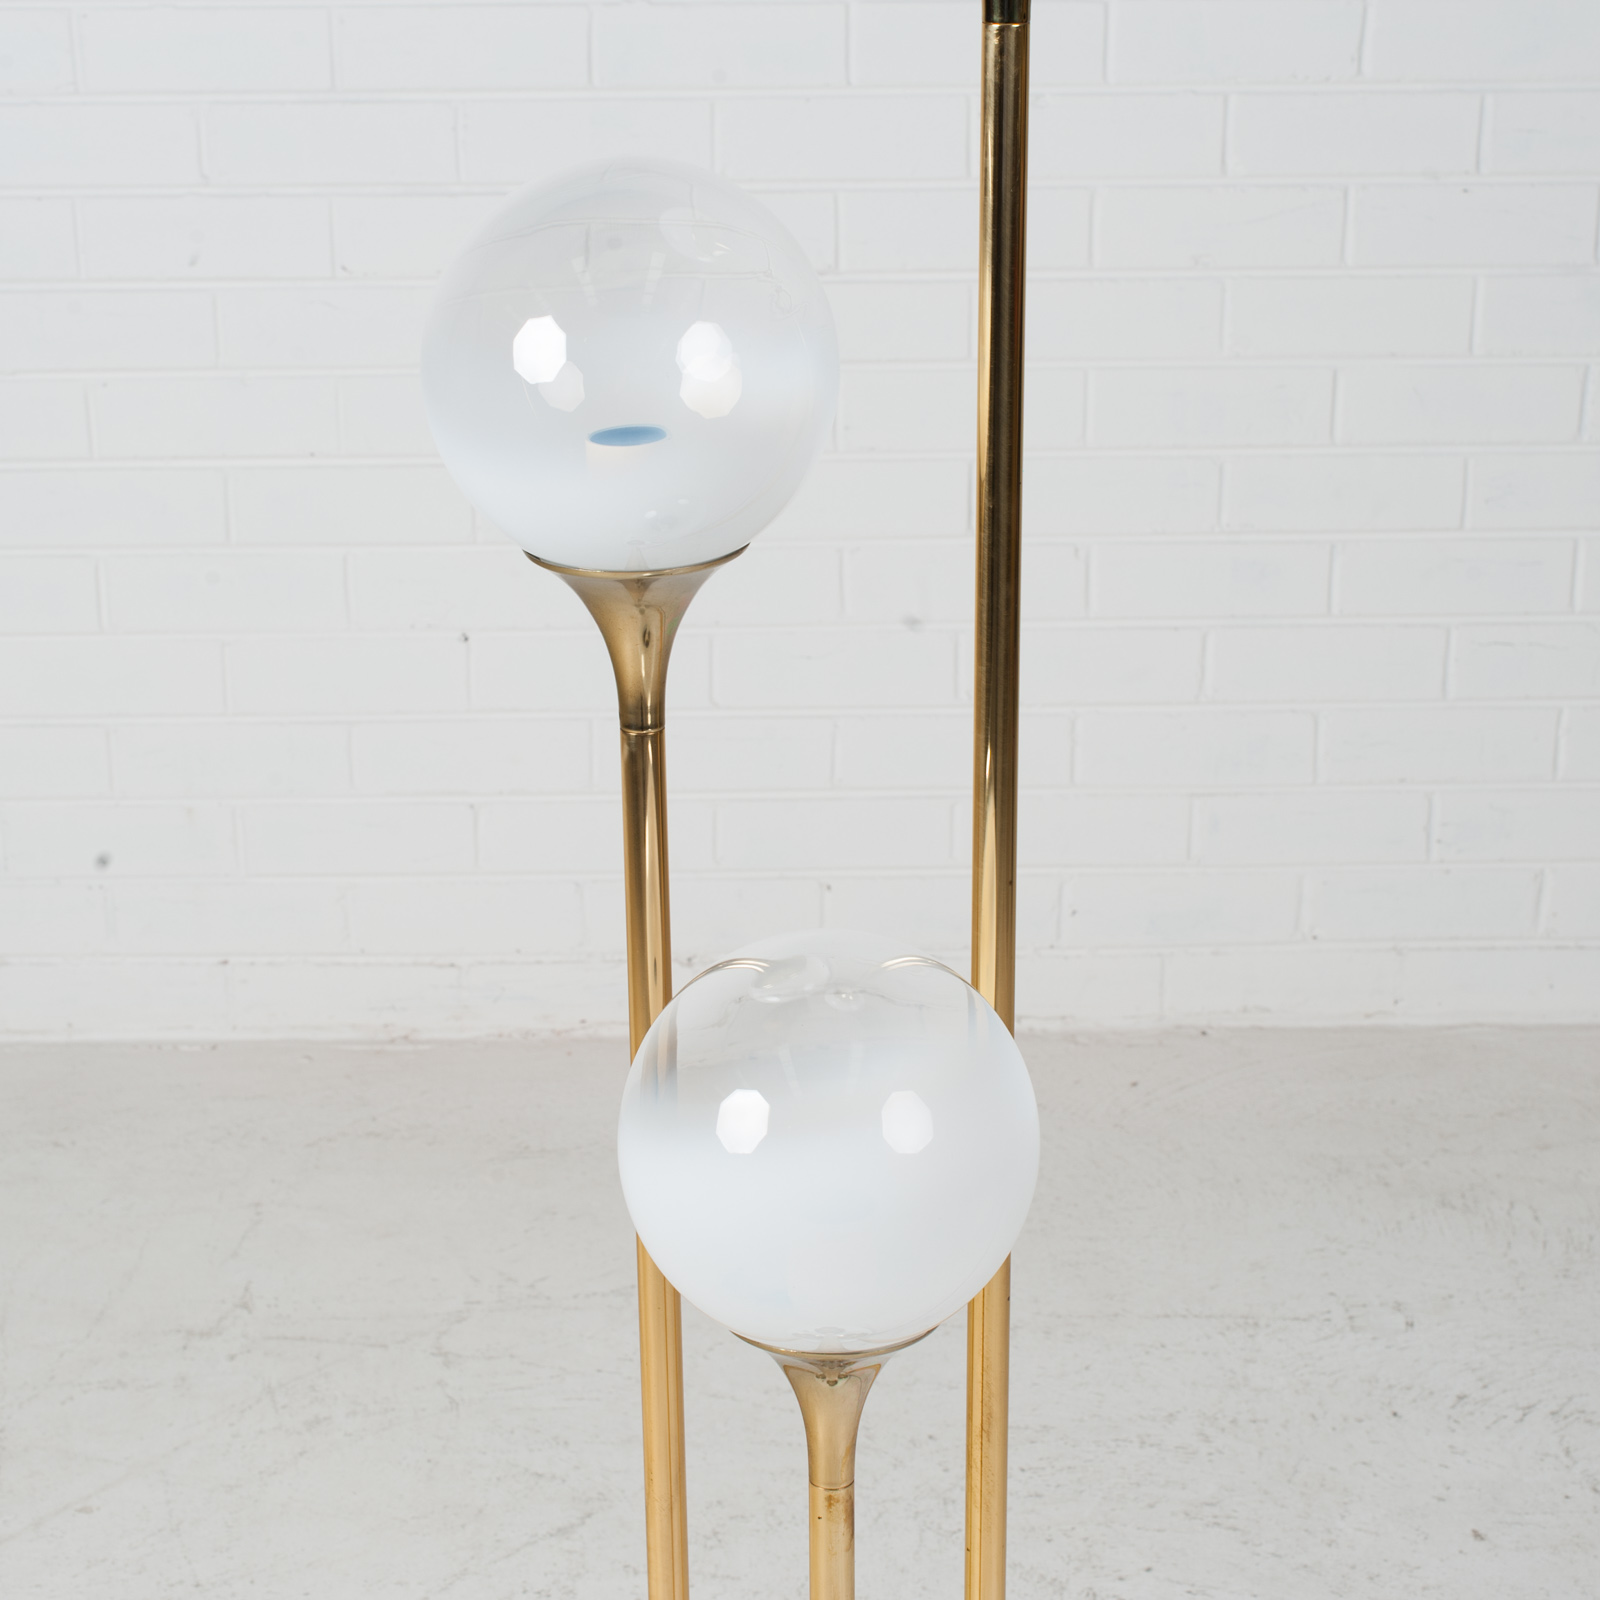 Brass Floor Lamp By Targetti Sankey 1960s Italy 08